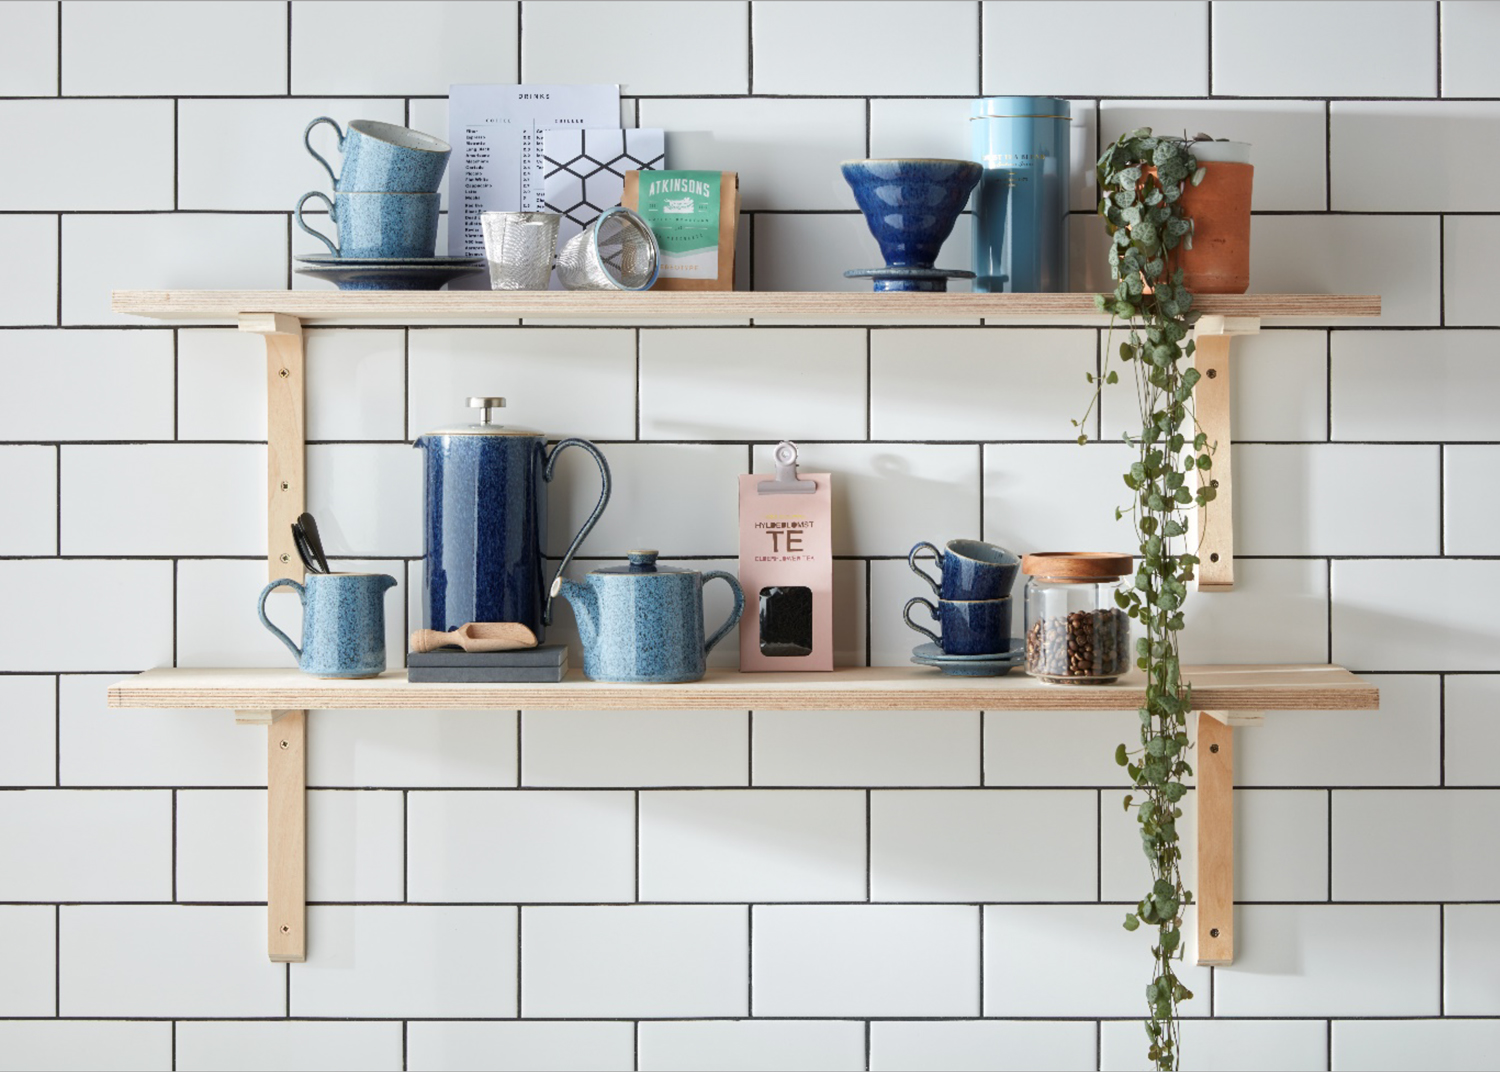 Coffee and mugs on plywood shelves in the kitchen